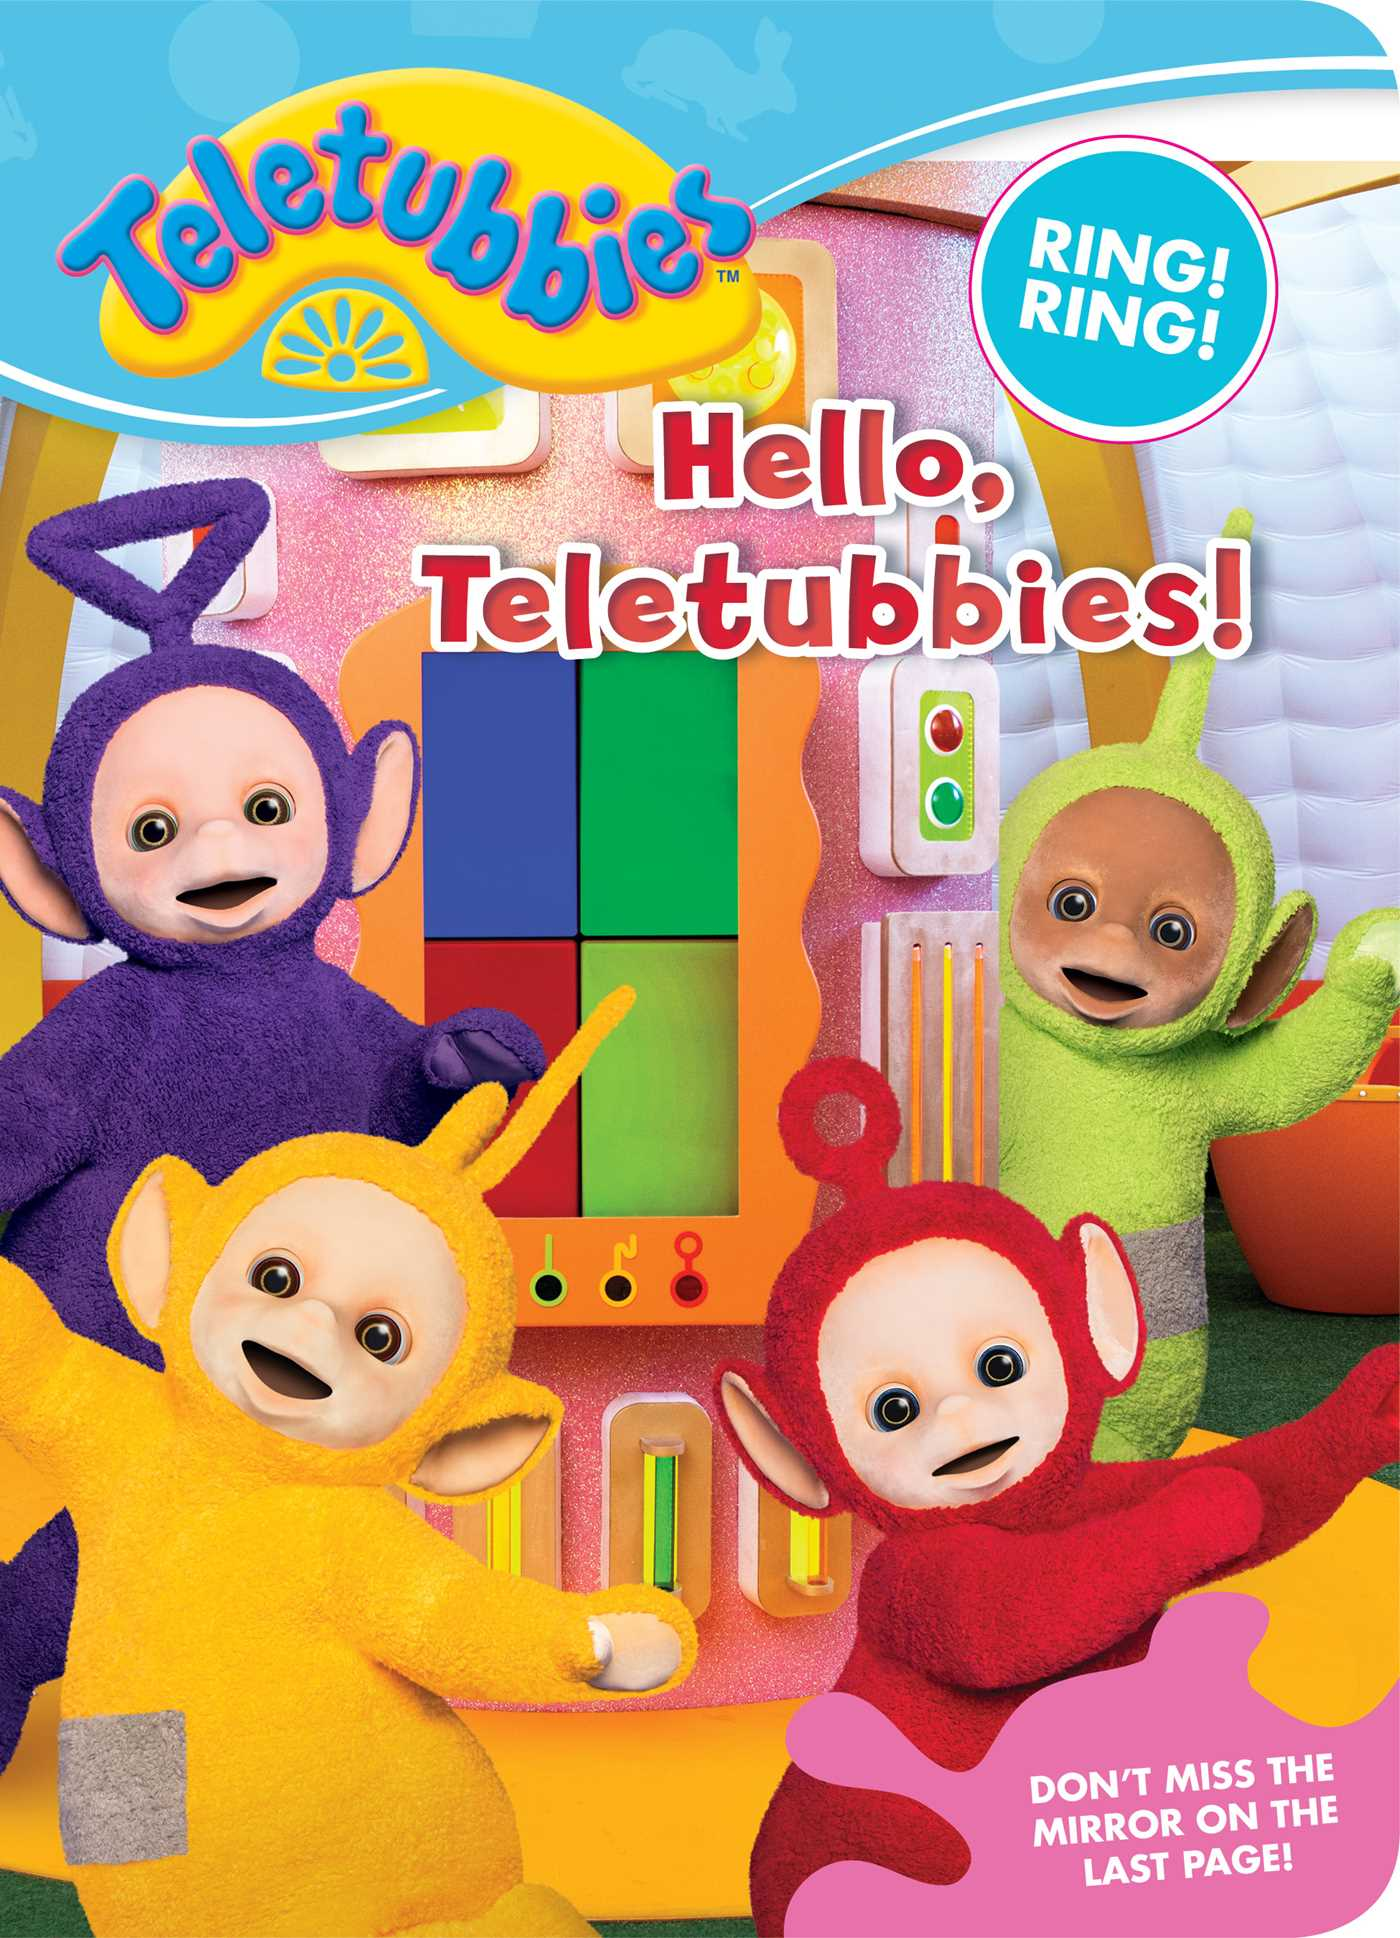 Hello, Teletubbies! | Book by Maggie Testa | Official ...